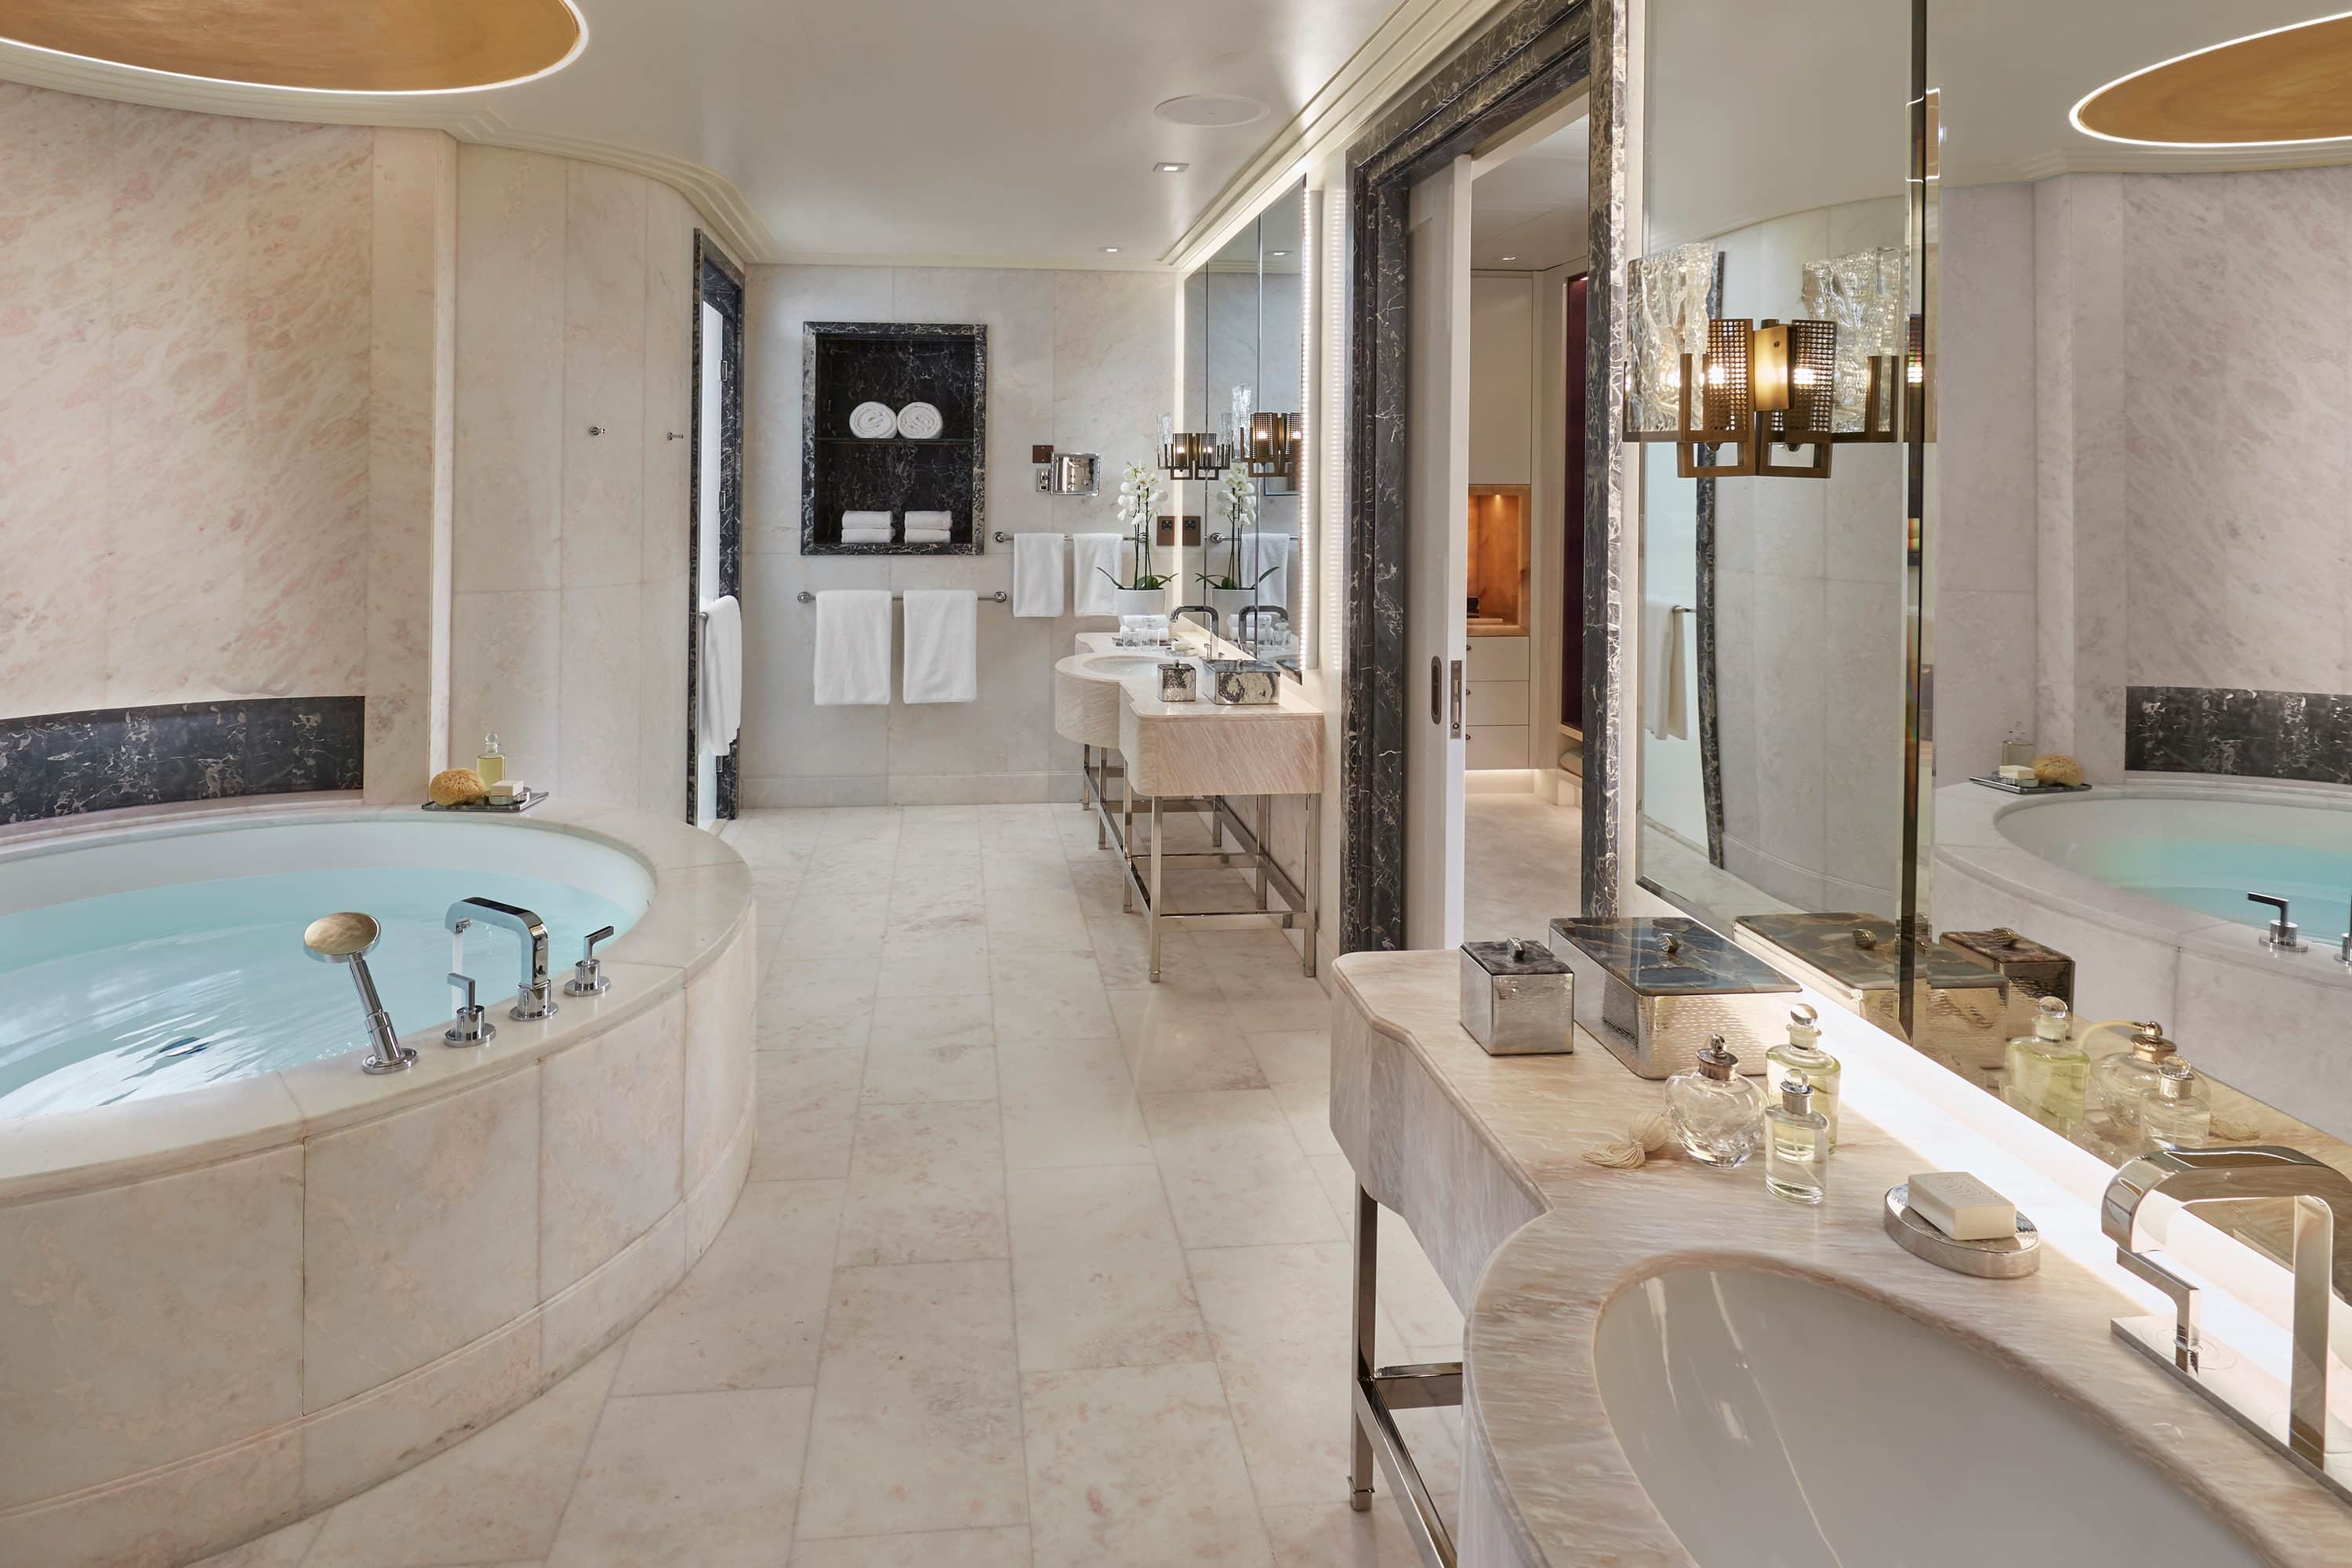 Bathroom of Baraha View Suite at Mandarin Oriental, Doha